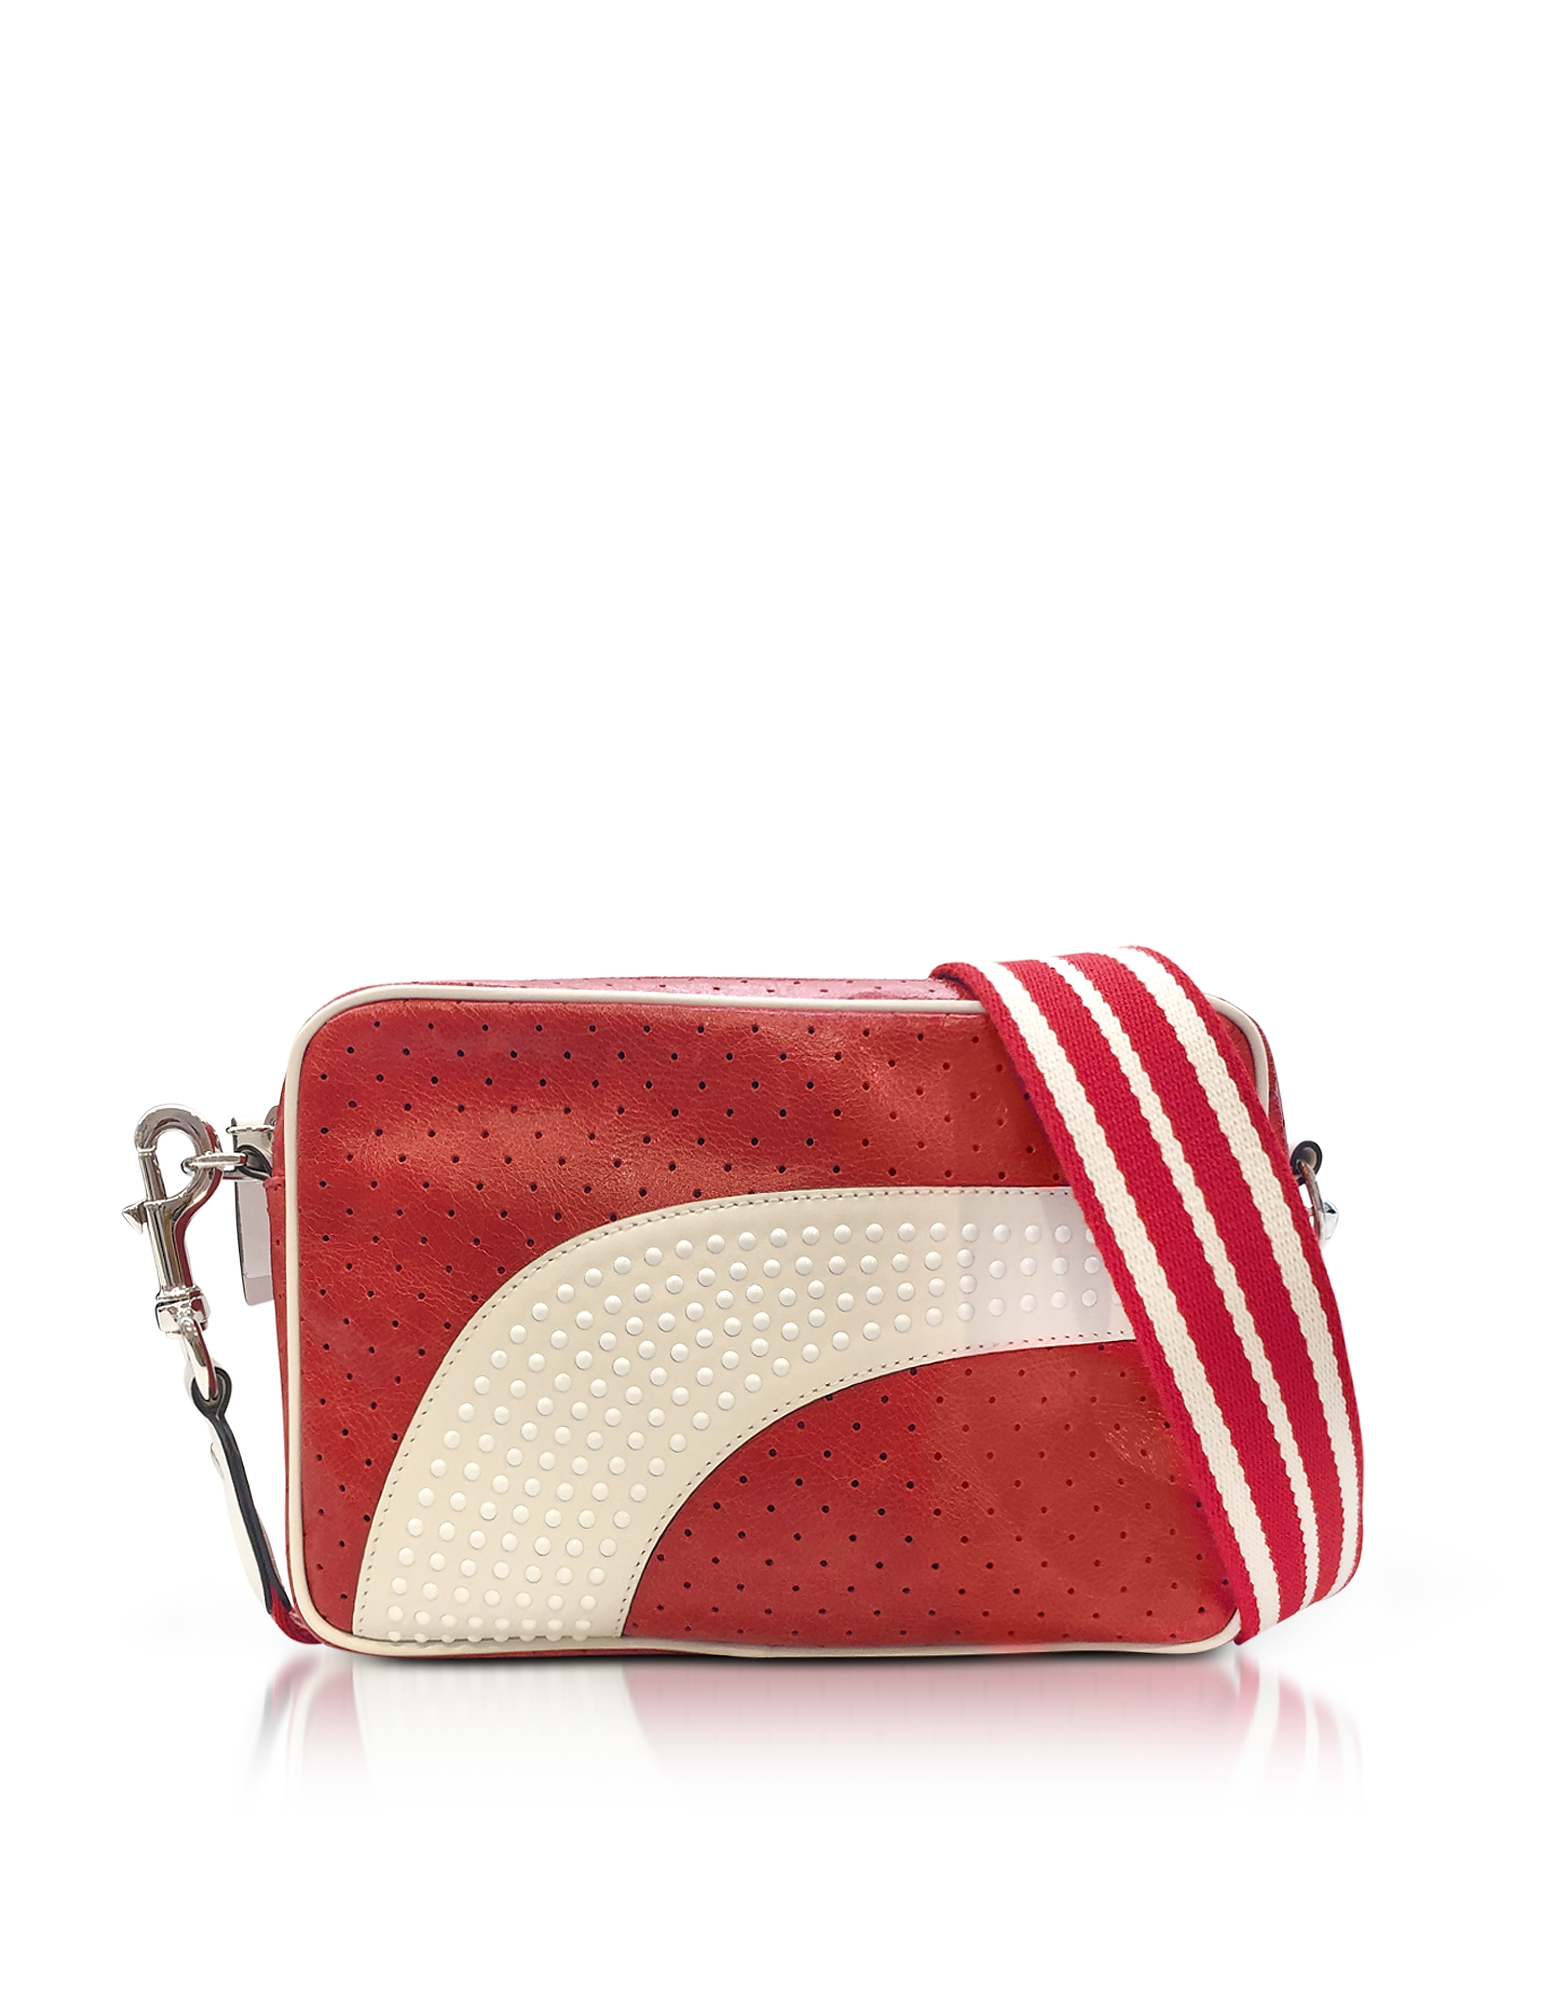 Image of RED Valentino Designer Handbags, Strawberry/Milk White Perforated Leather Crossbody Bag w/Studs